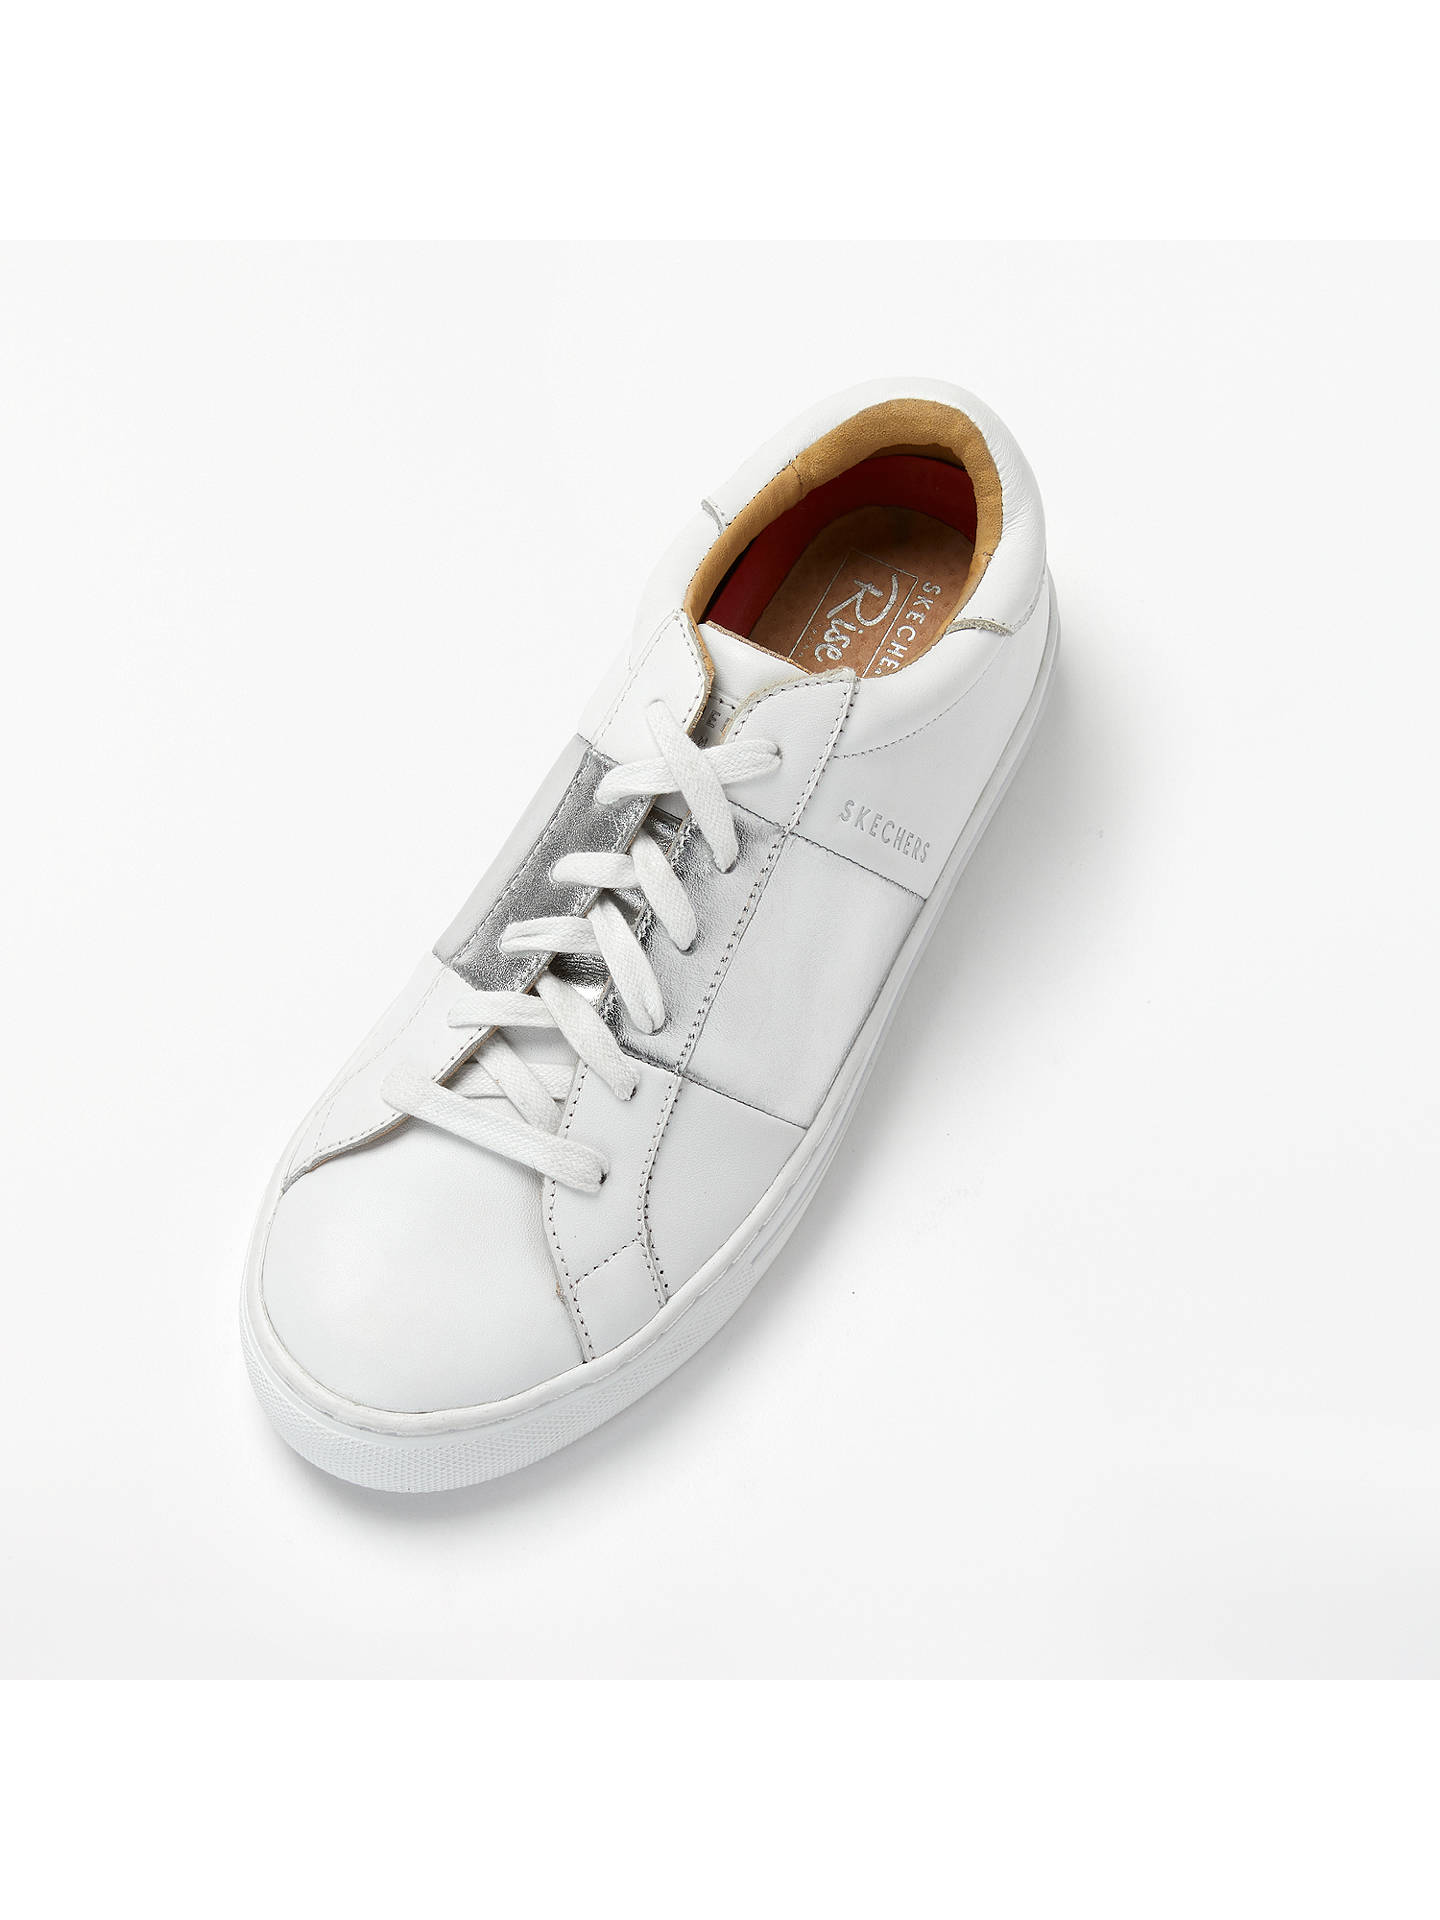 Buy Skechers Side Street Lace Up Trainers, White/Silver Leather, 8 Online at johnlewis.com